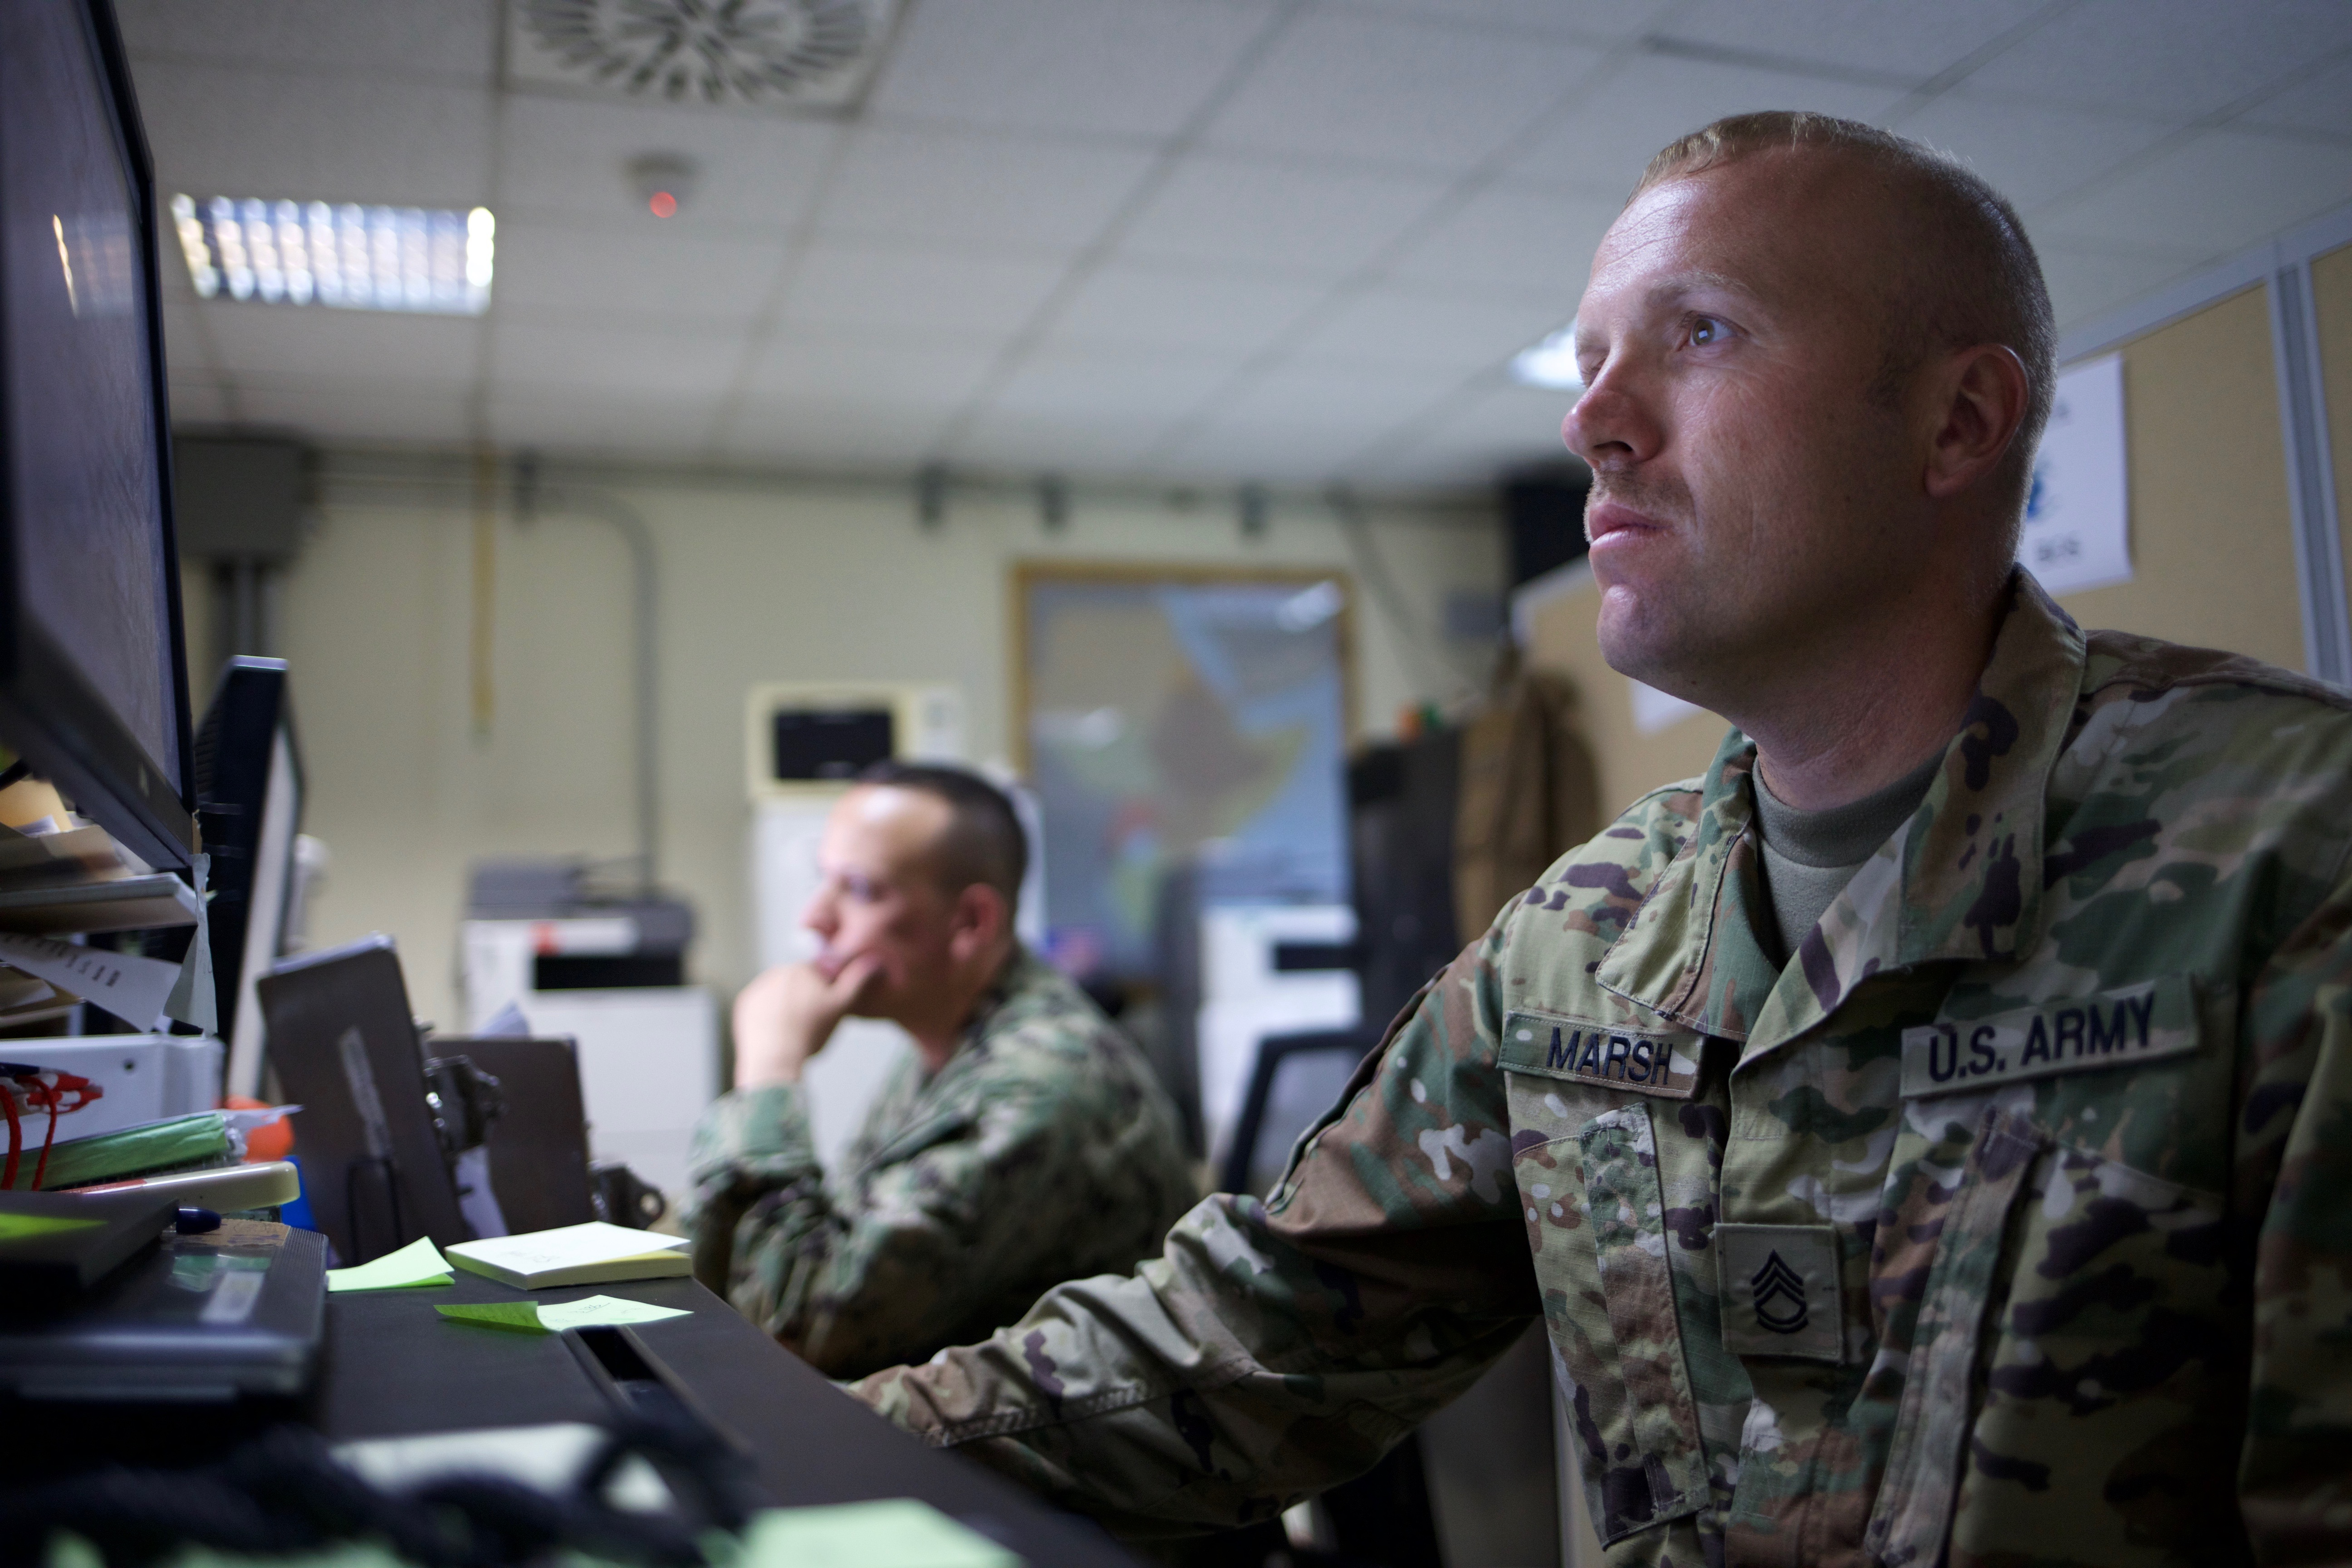 U.S. Army Sgt. 1st Class James Marsh, Base Operating Support manager with the Combined Joint Task Force-Horn of Africa Logistics Directorate's Base Operating Support-Integrator office, coordinates support resources at Camp Lemonnier, Djibouti, August 18, 2017. U.S. Africa Command designated CJTF-HOA as BOS-I in August 2016, putting the 500-person task force in charge of coordinating the efficient use of mission resources to sustain U.S. forces in forward operating locations in Somalia. Currently, CJTF-HOA's main effort is to improve security in Somalia by neutralizing violent extremist organizations like al-Shabaab and successfully transitioning security responsibilities from the African Union Mission in Somalia to the Somali National Security Forces. (U.S. Army photo by Capt. Alán Ortiz)